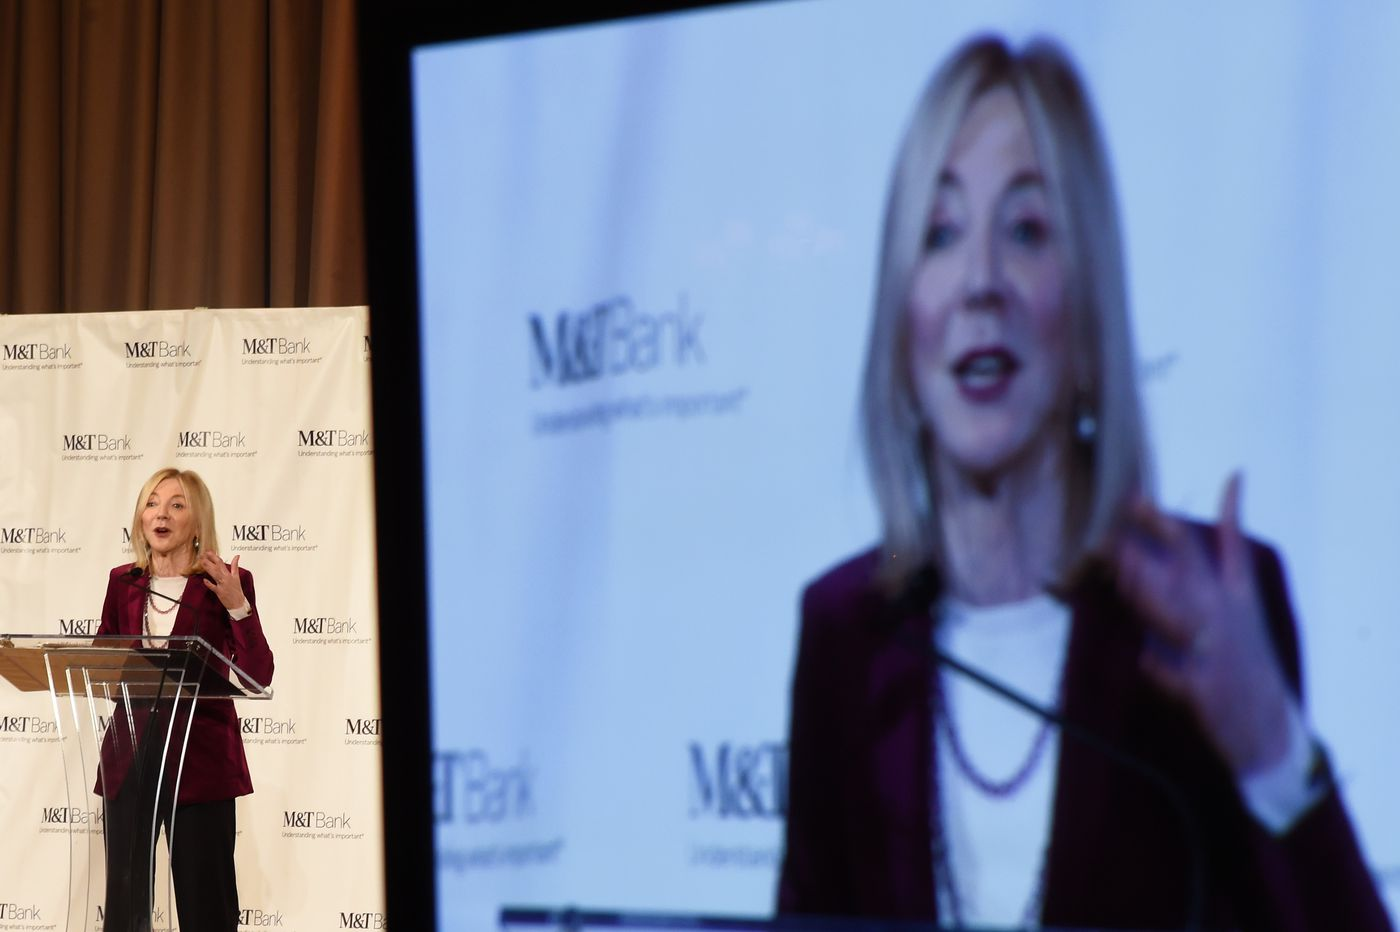 Penn president Amy Gutmann helped prepare report on restoring faith in the media